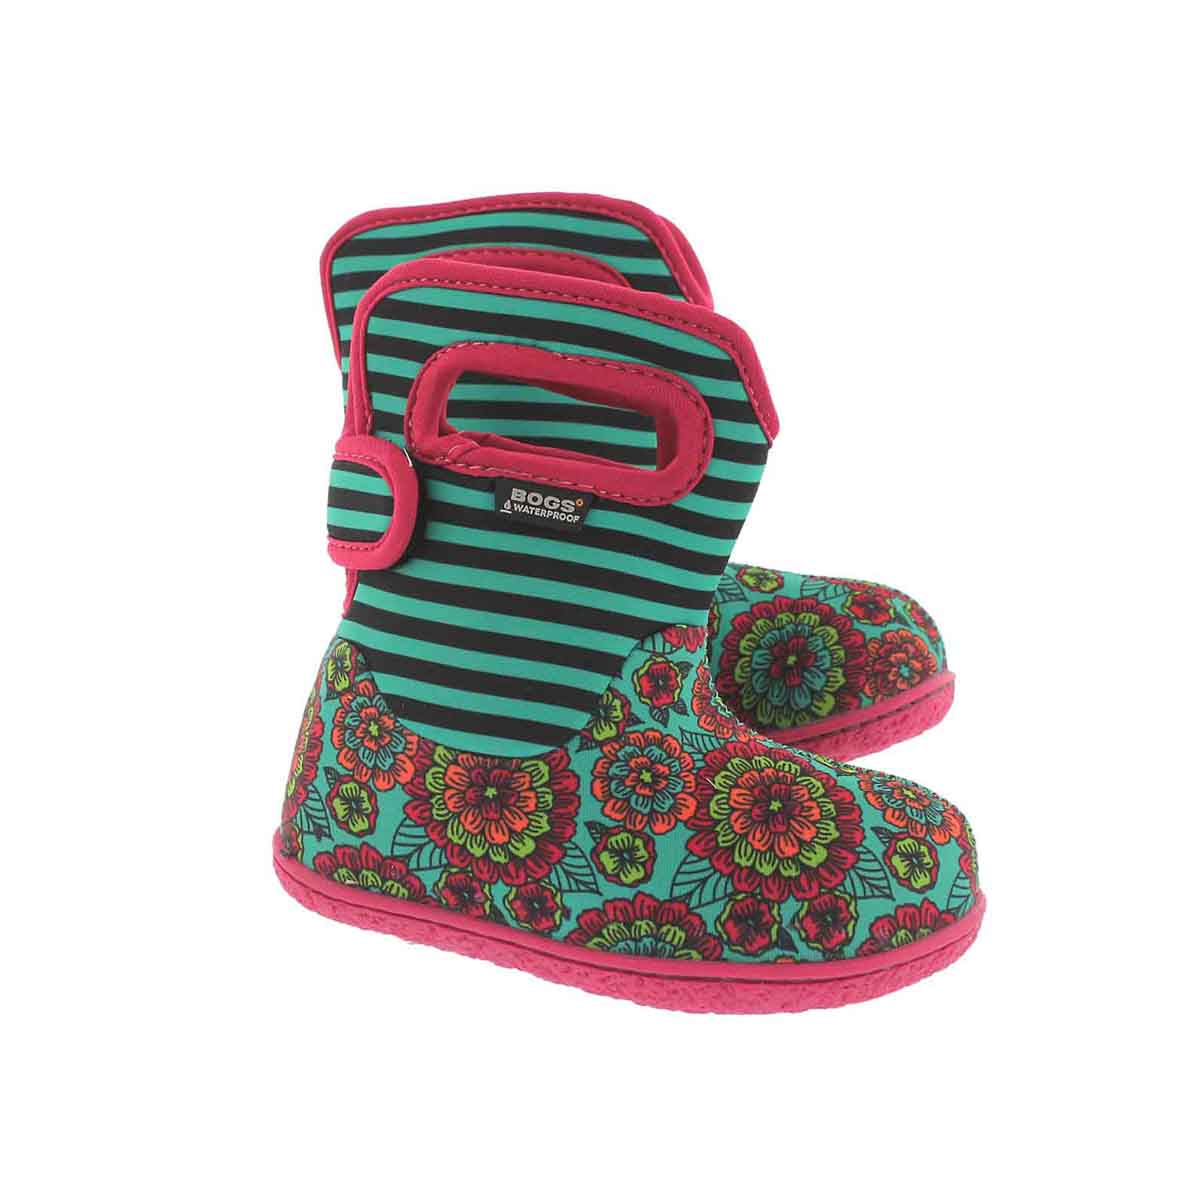 Inf-g Pansy Stripe emerald mlt wtpf boot